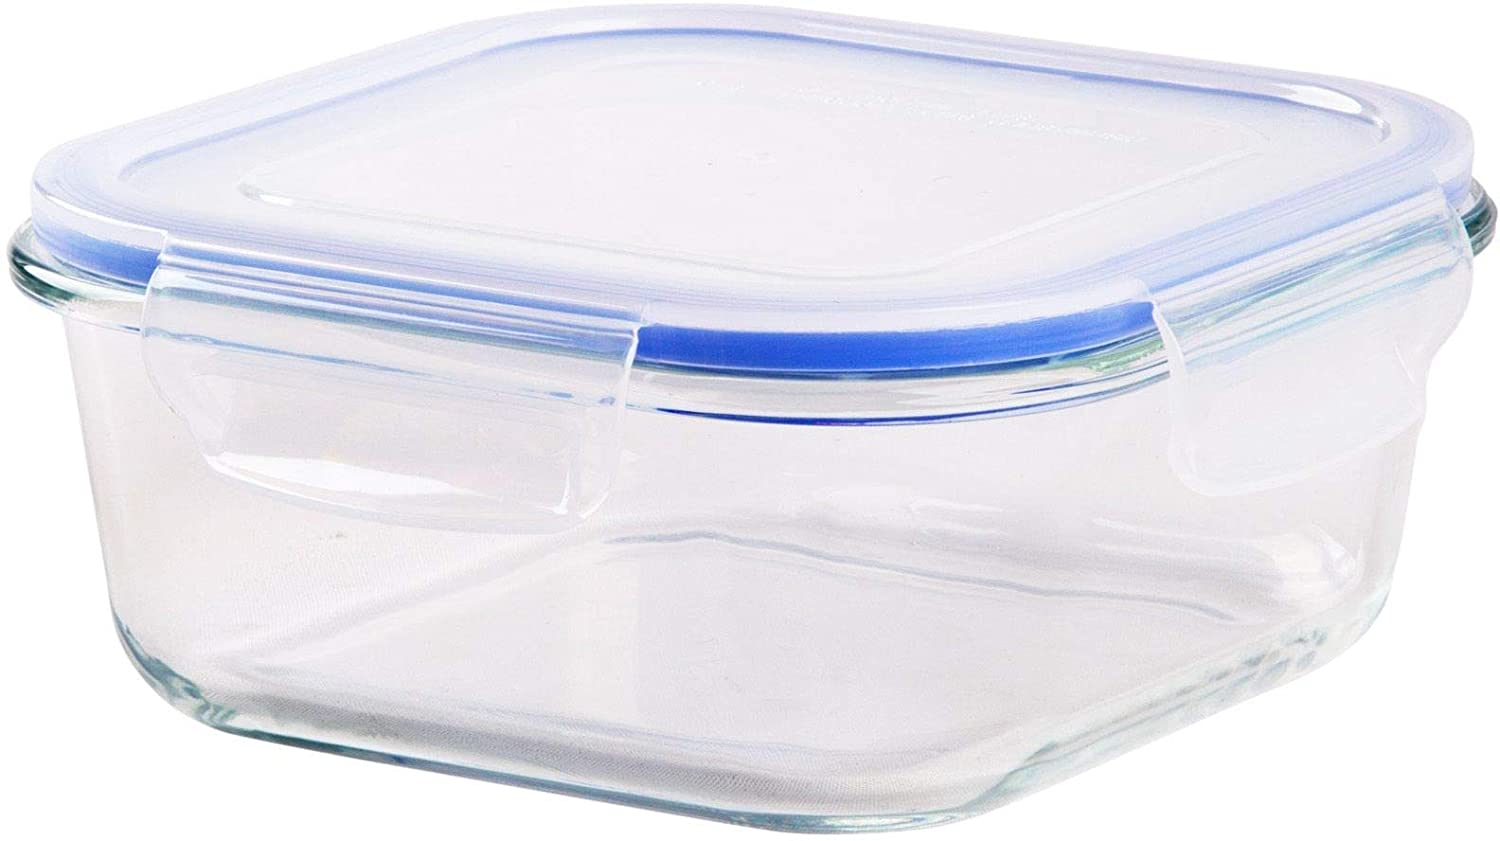 """Palais Glassware Tempered Glass Food Storage and Meal Prep Container with Airtight Lid - Baking Dish (Square, 5.5"""" X 5.5"""" X 2.5"""")"""